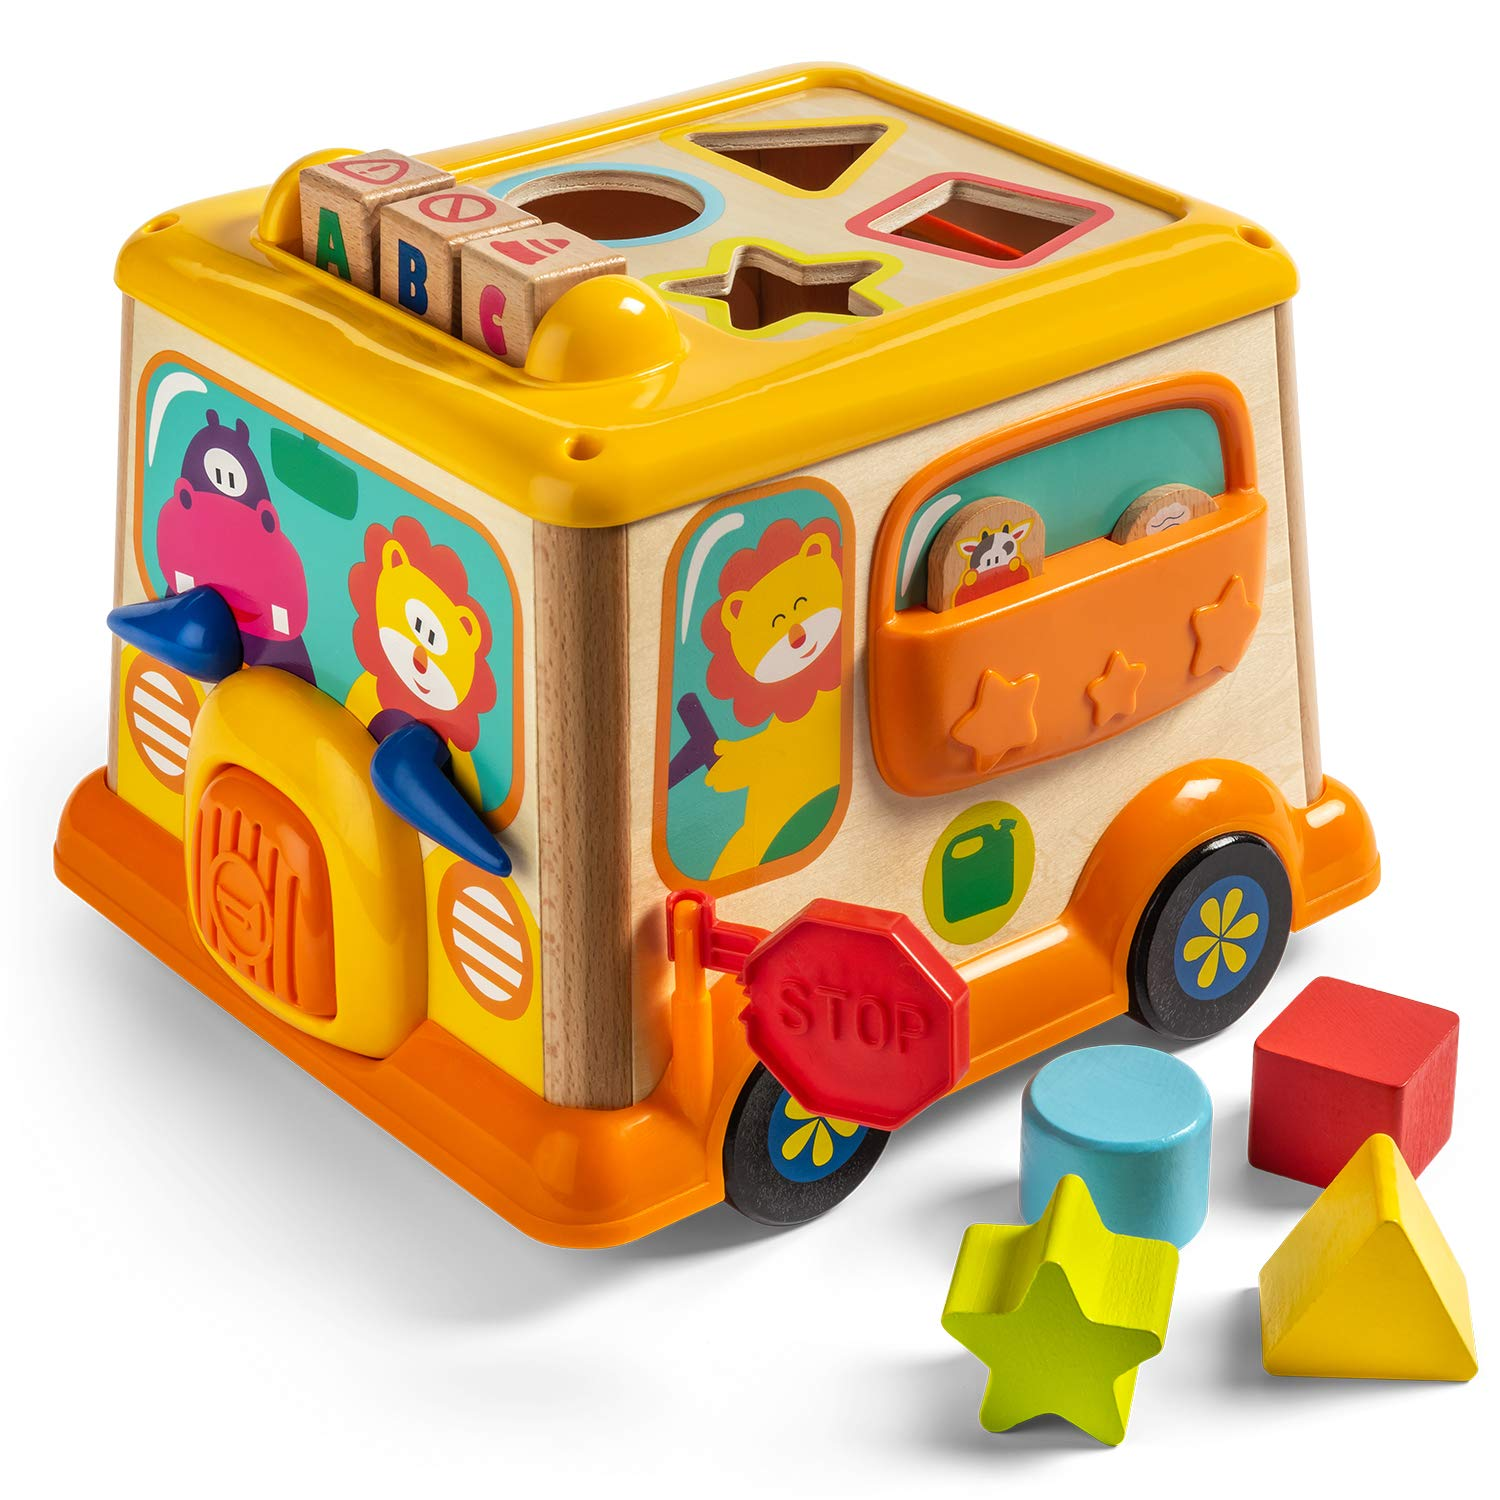 Top 15 Best Educational Toys For 2 Year Olds